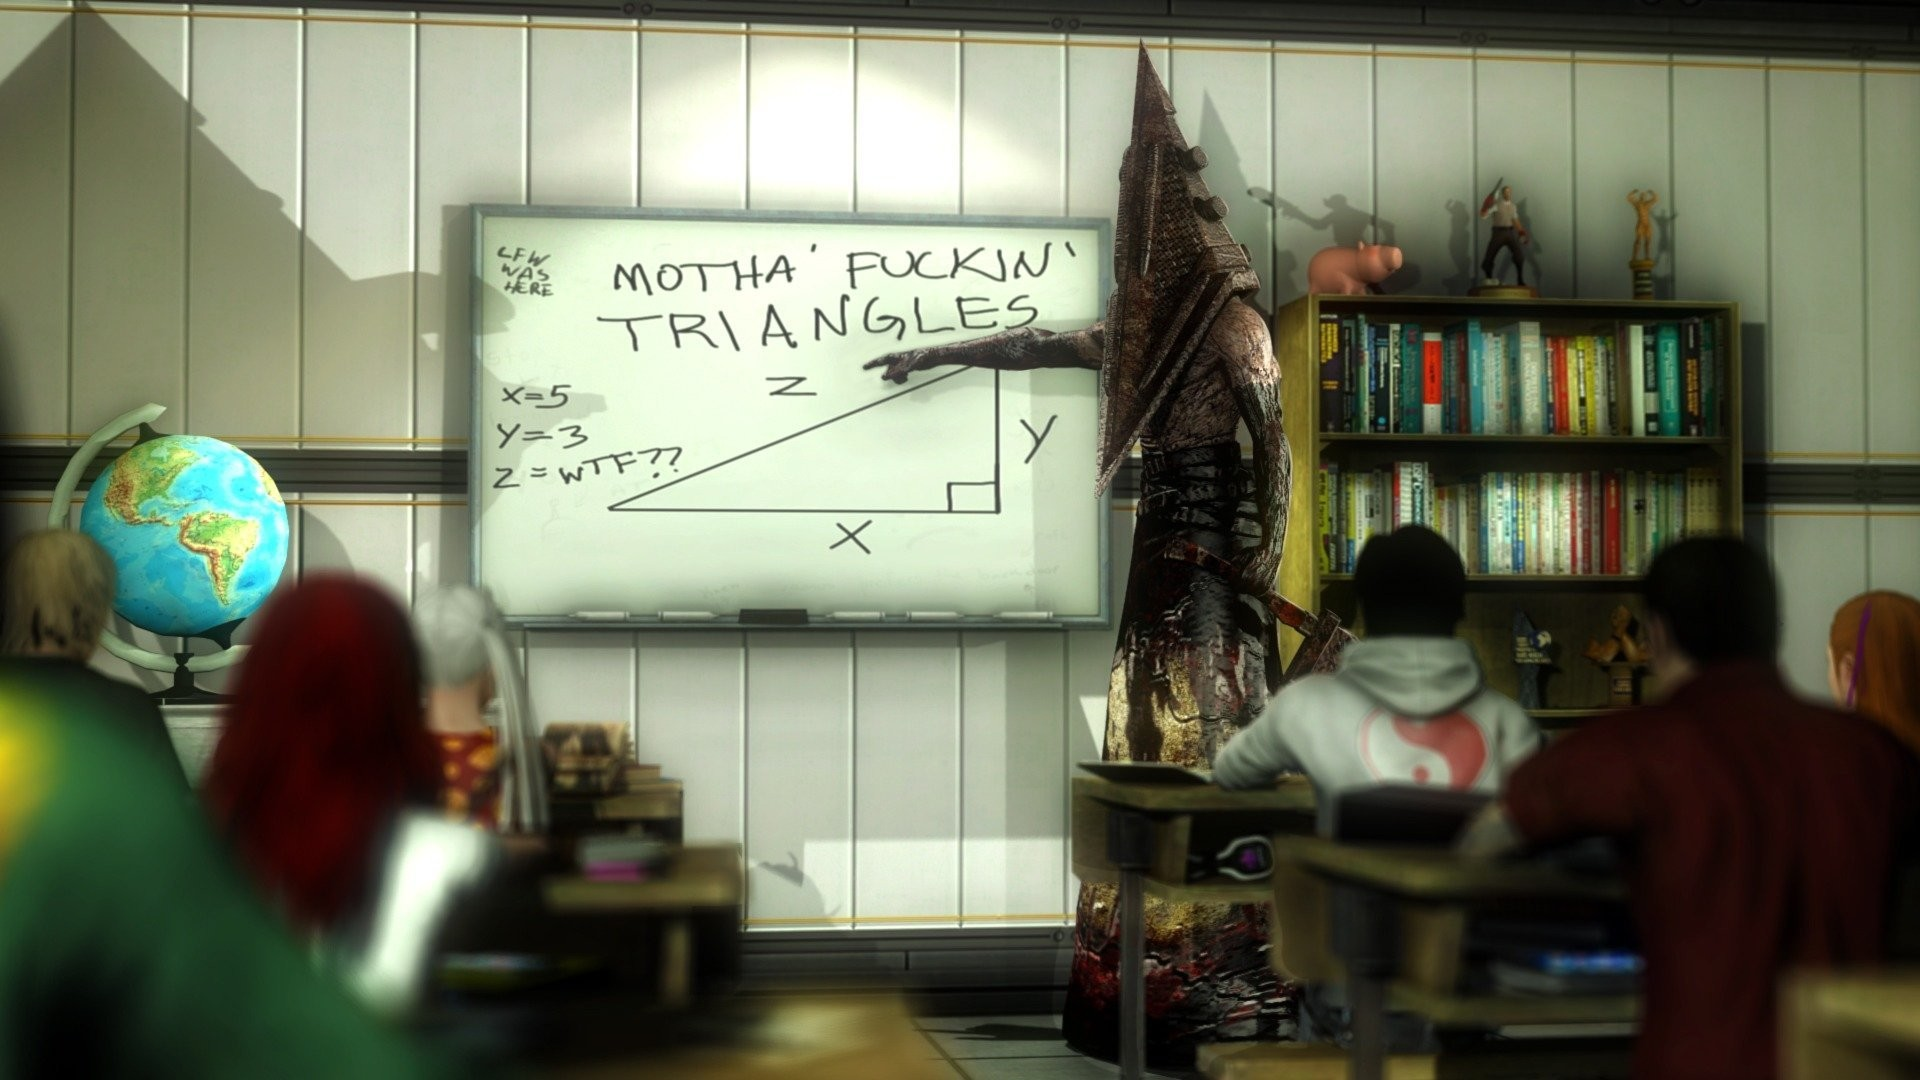 pyramid pyramid head school lesson silent hill board teacher globe the  situation students triangle party class